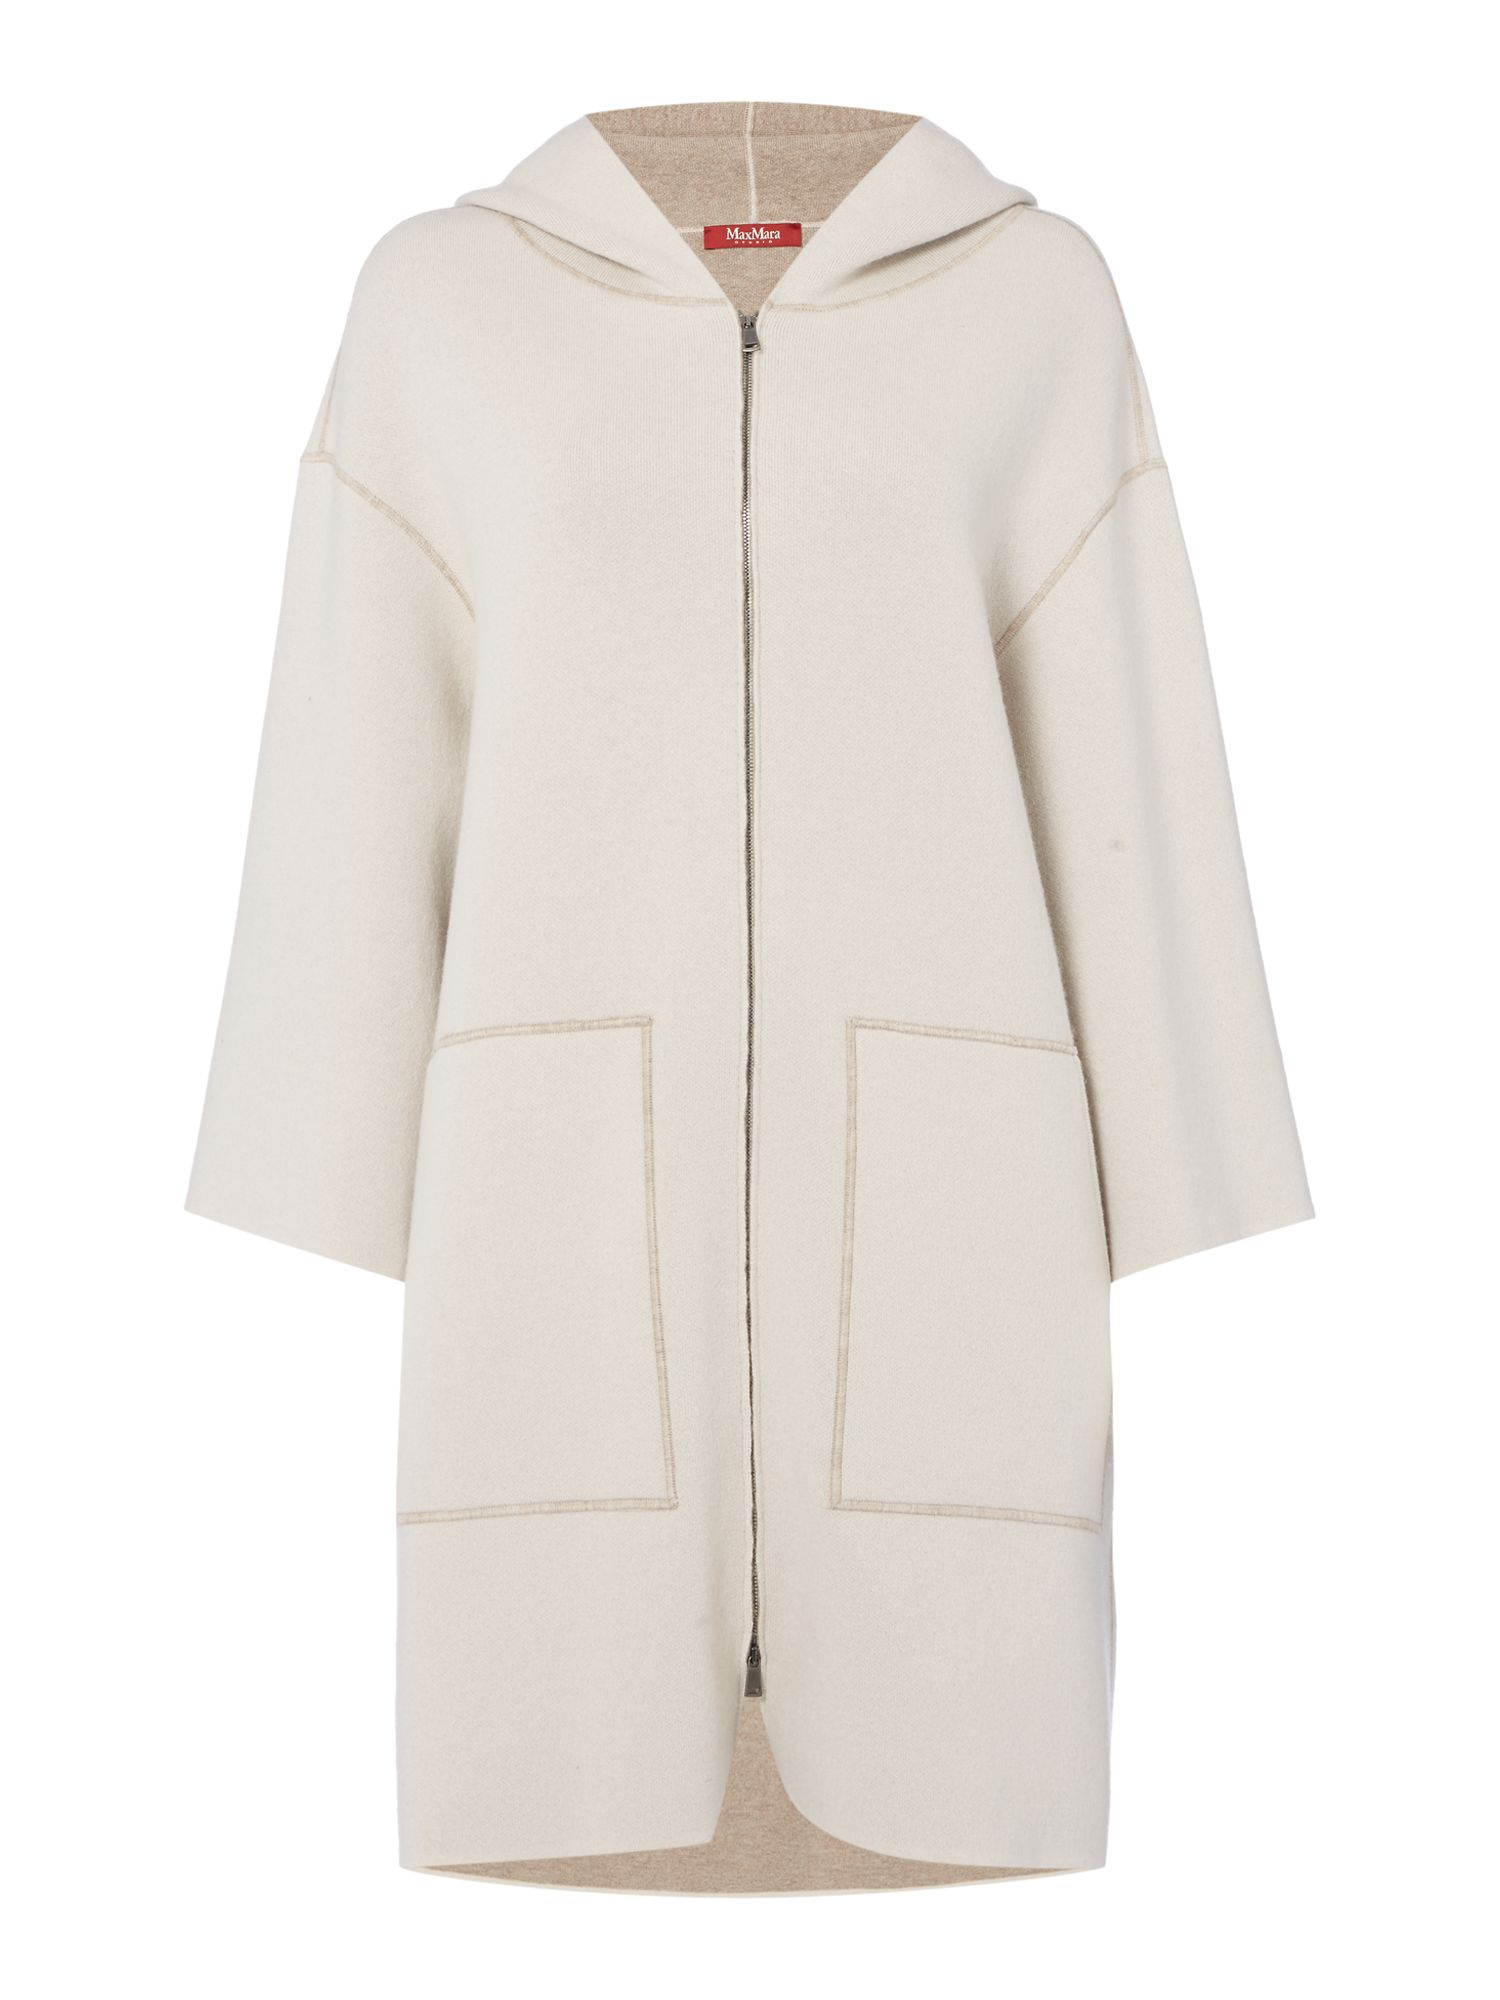 Max Mara Studio Ostile knitted coat with front pocket and hood, Sand